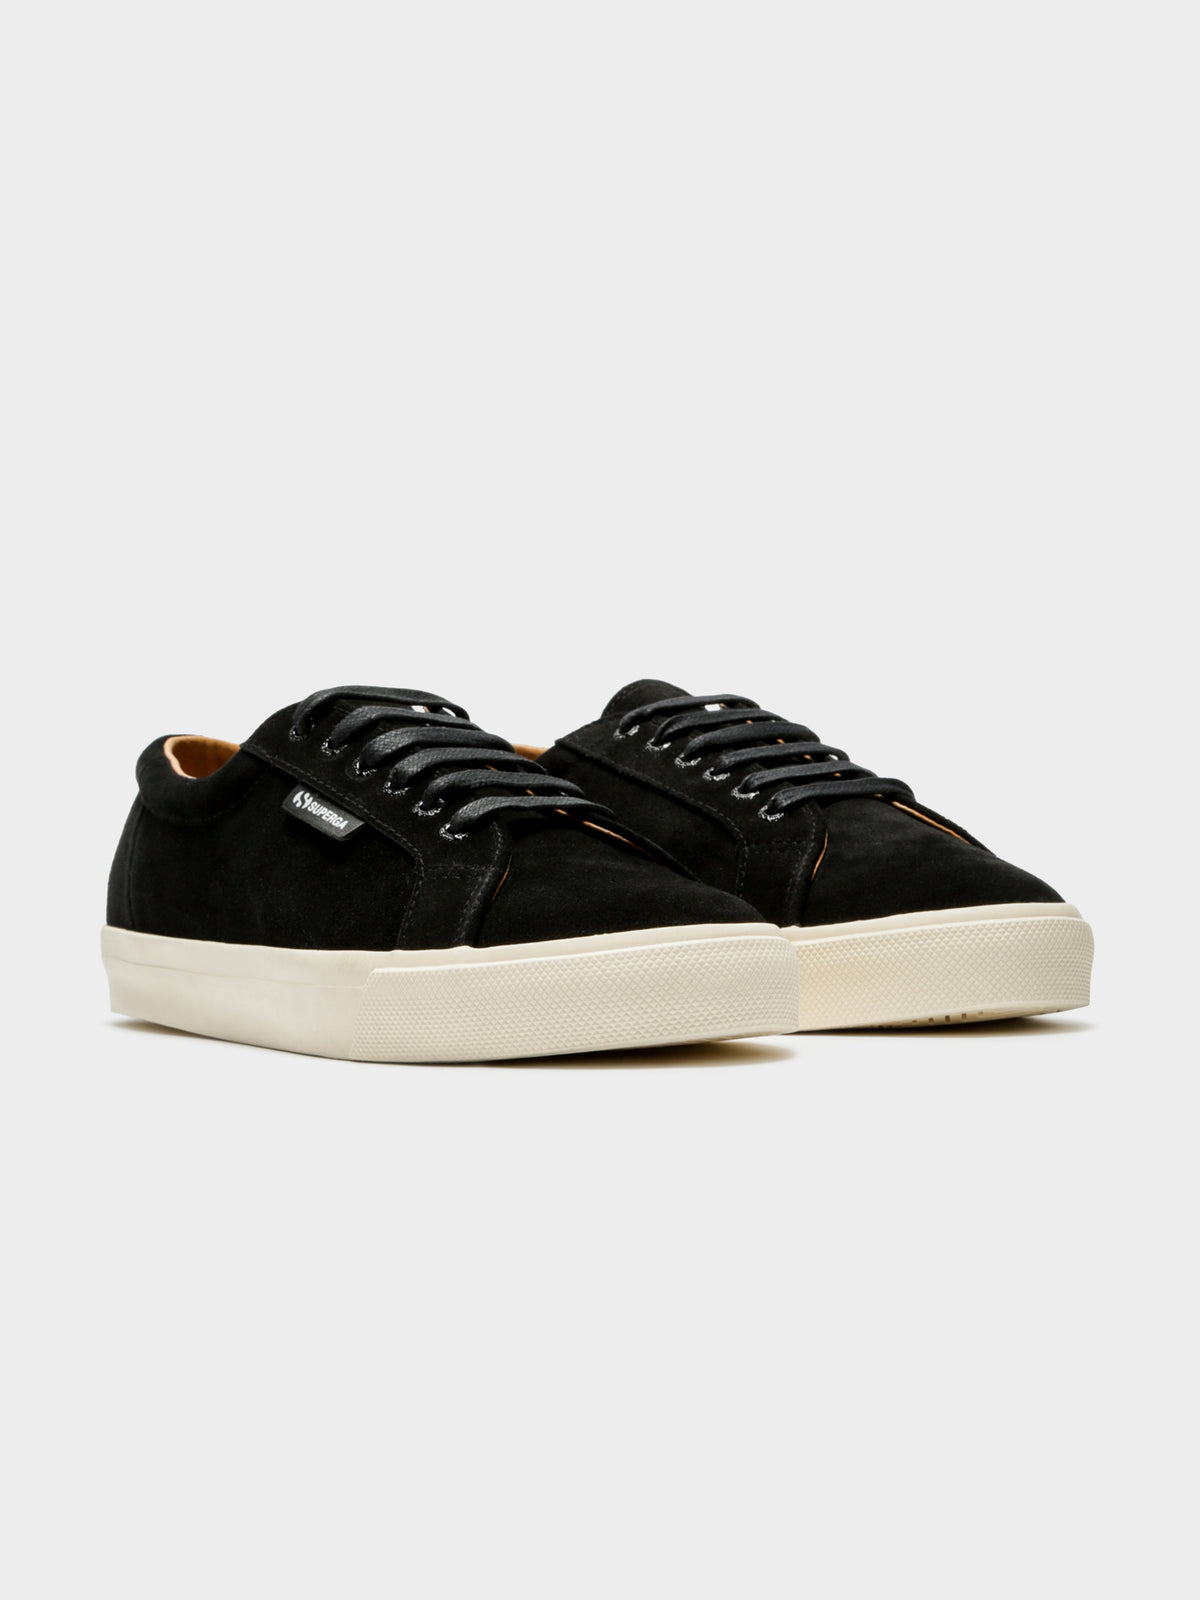 Womens 2804 Sueu Sneakers in Black